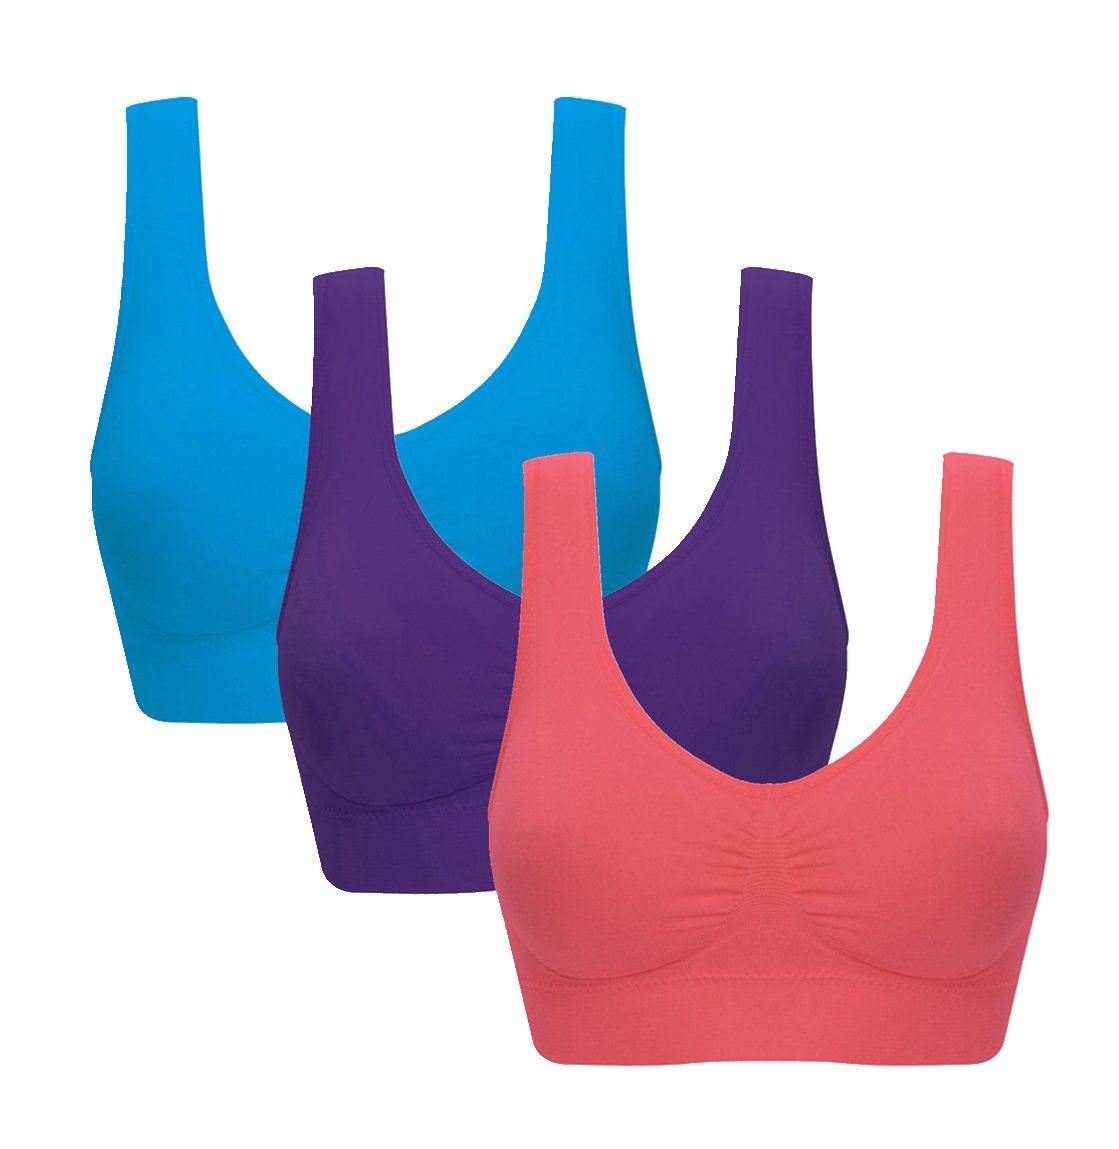 Women's Comfort Workout Sports Bra Low-Impact Activity Sleep Bras Pack of 3 S